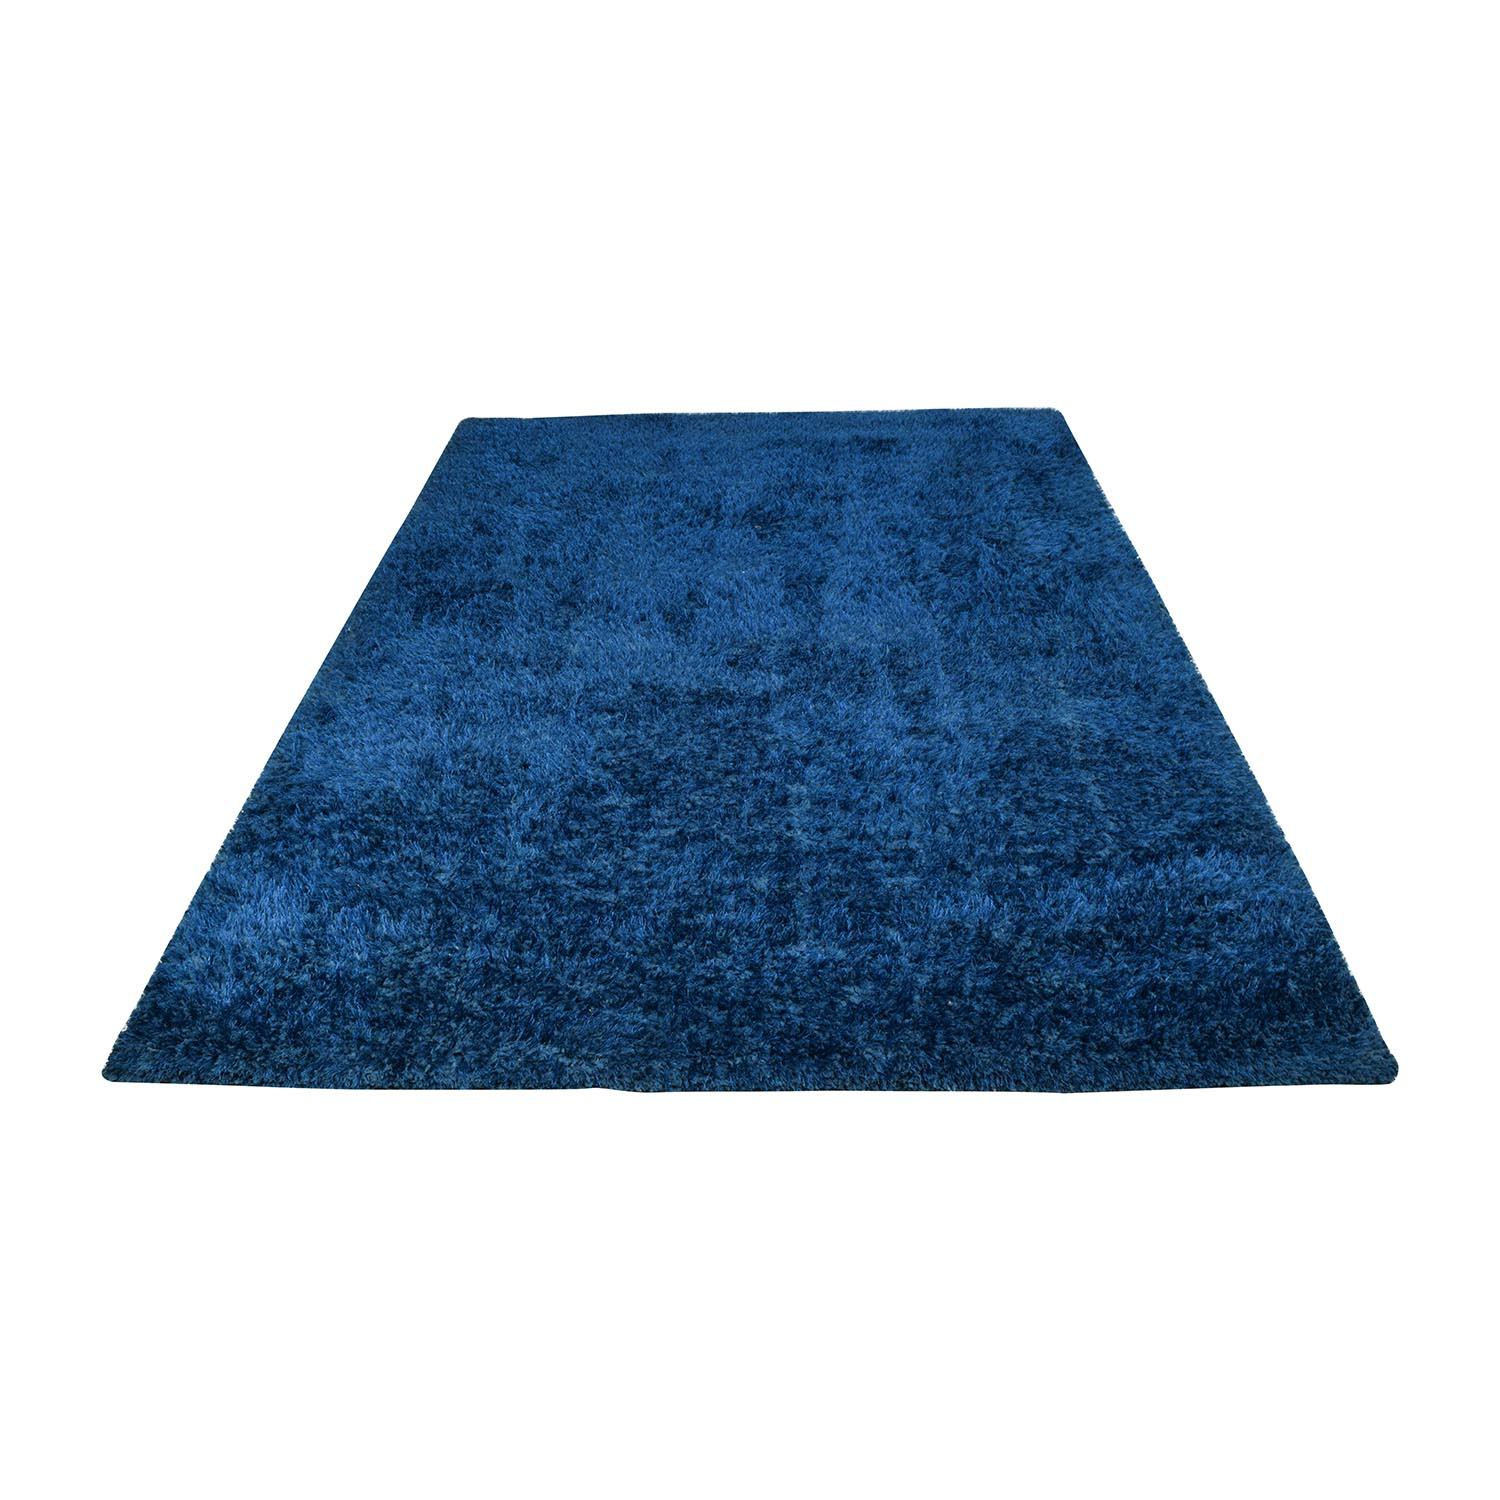 NuLoom NuLoom Hand Made Soft Plus Shag Rug coupon